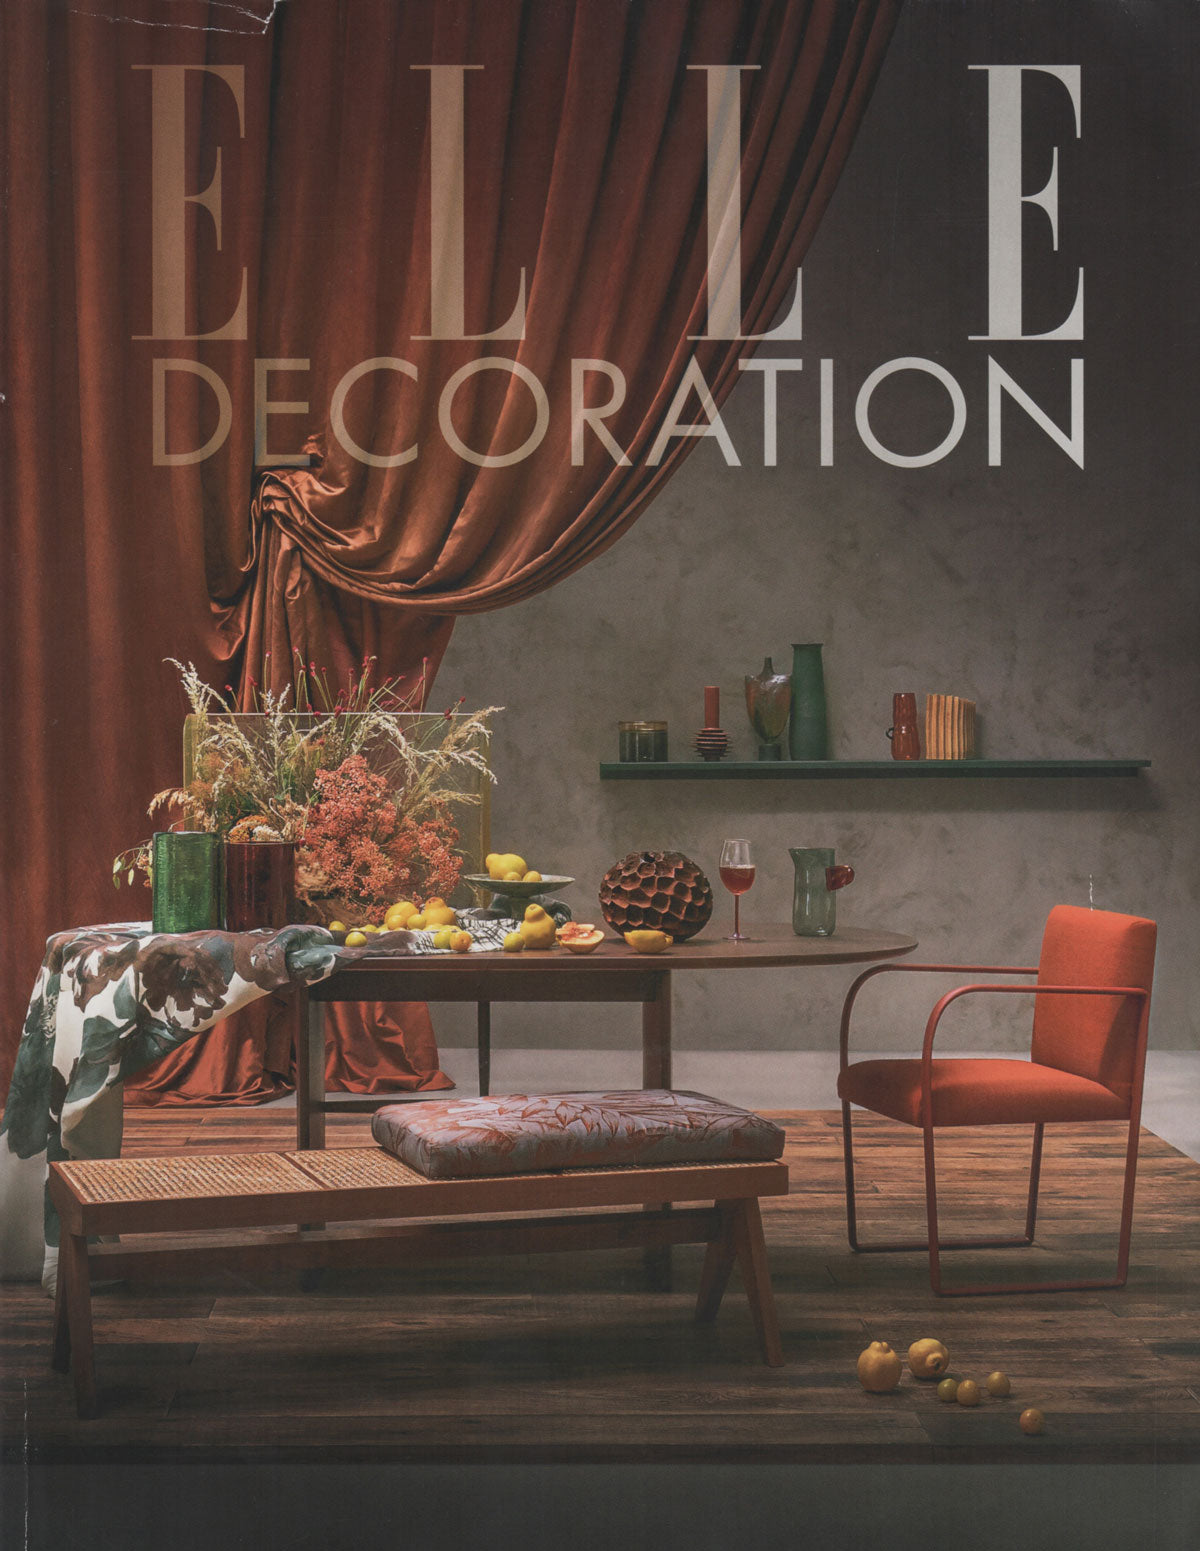 Elle Decoration October 2019 featuring fabrics by The Monkey Puzzle Tree